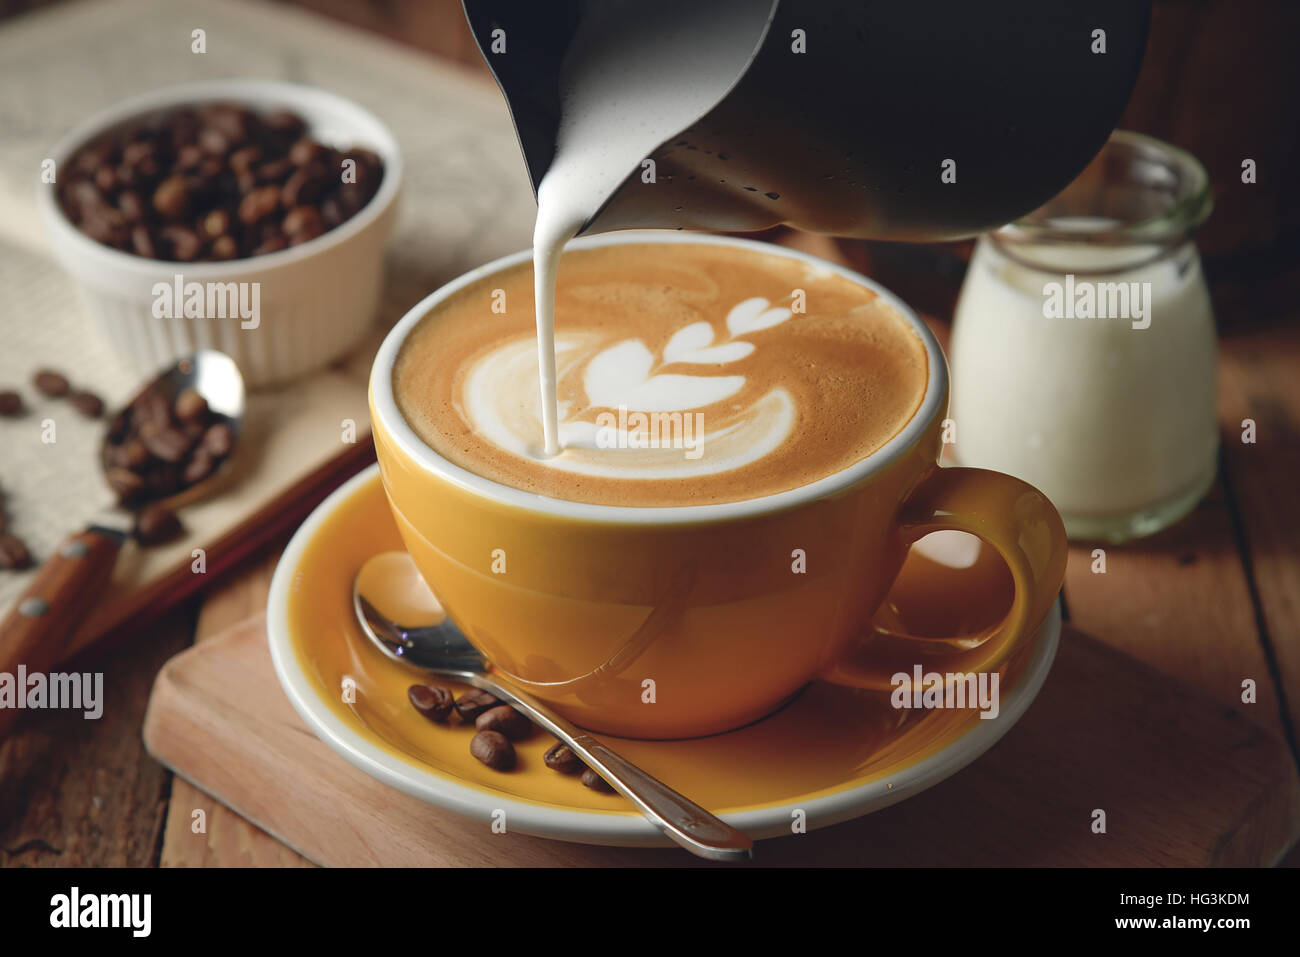 Making latte Art on a Cappuccino. Freshly made - Stock Image